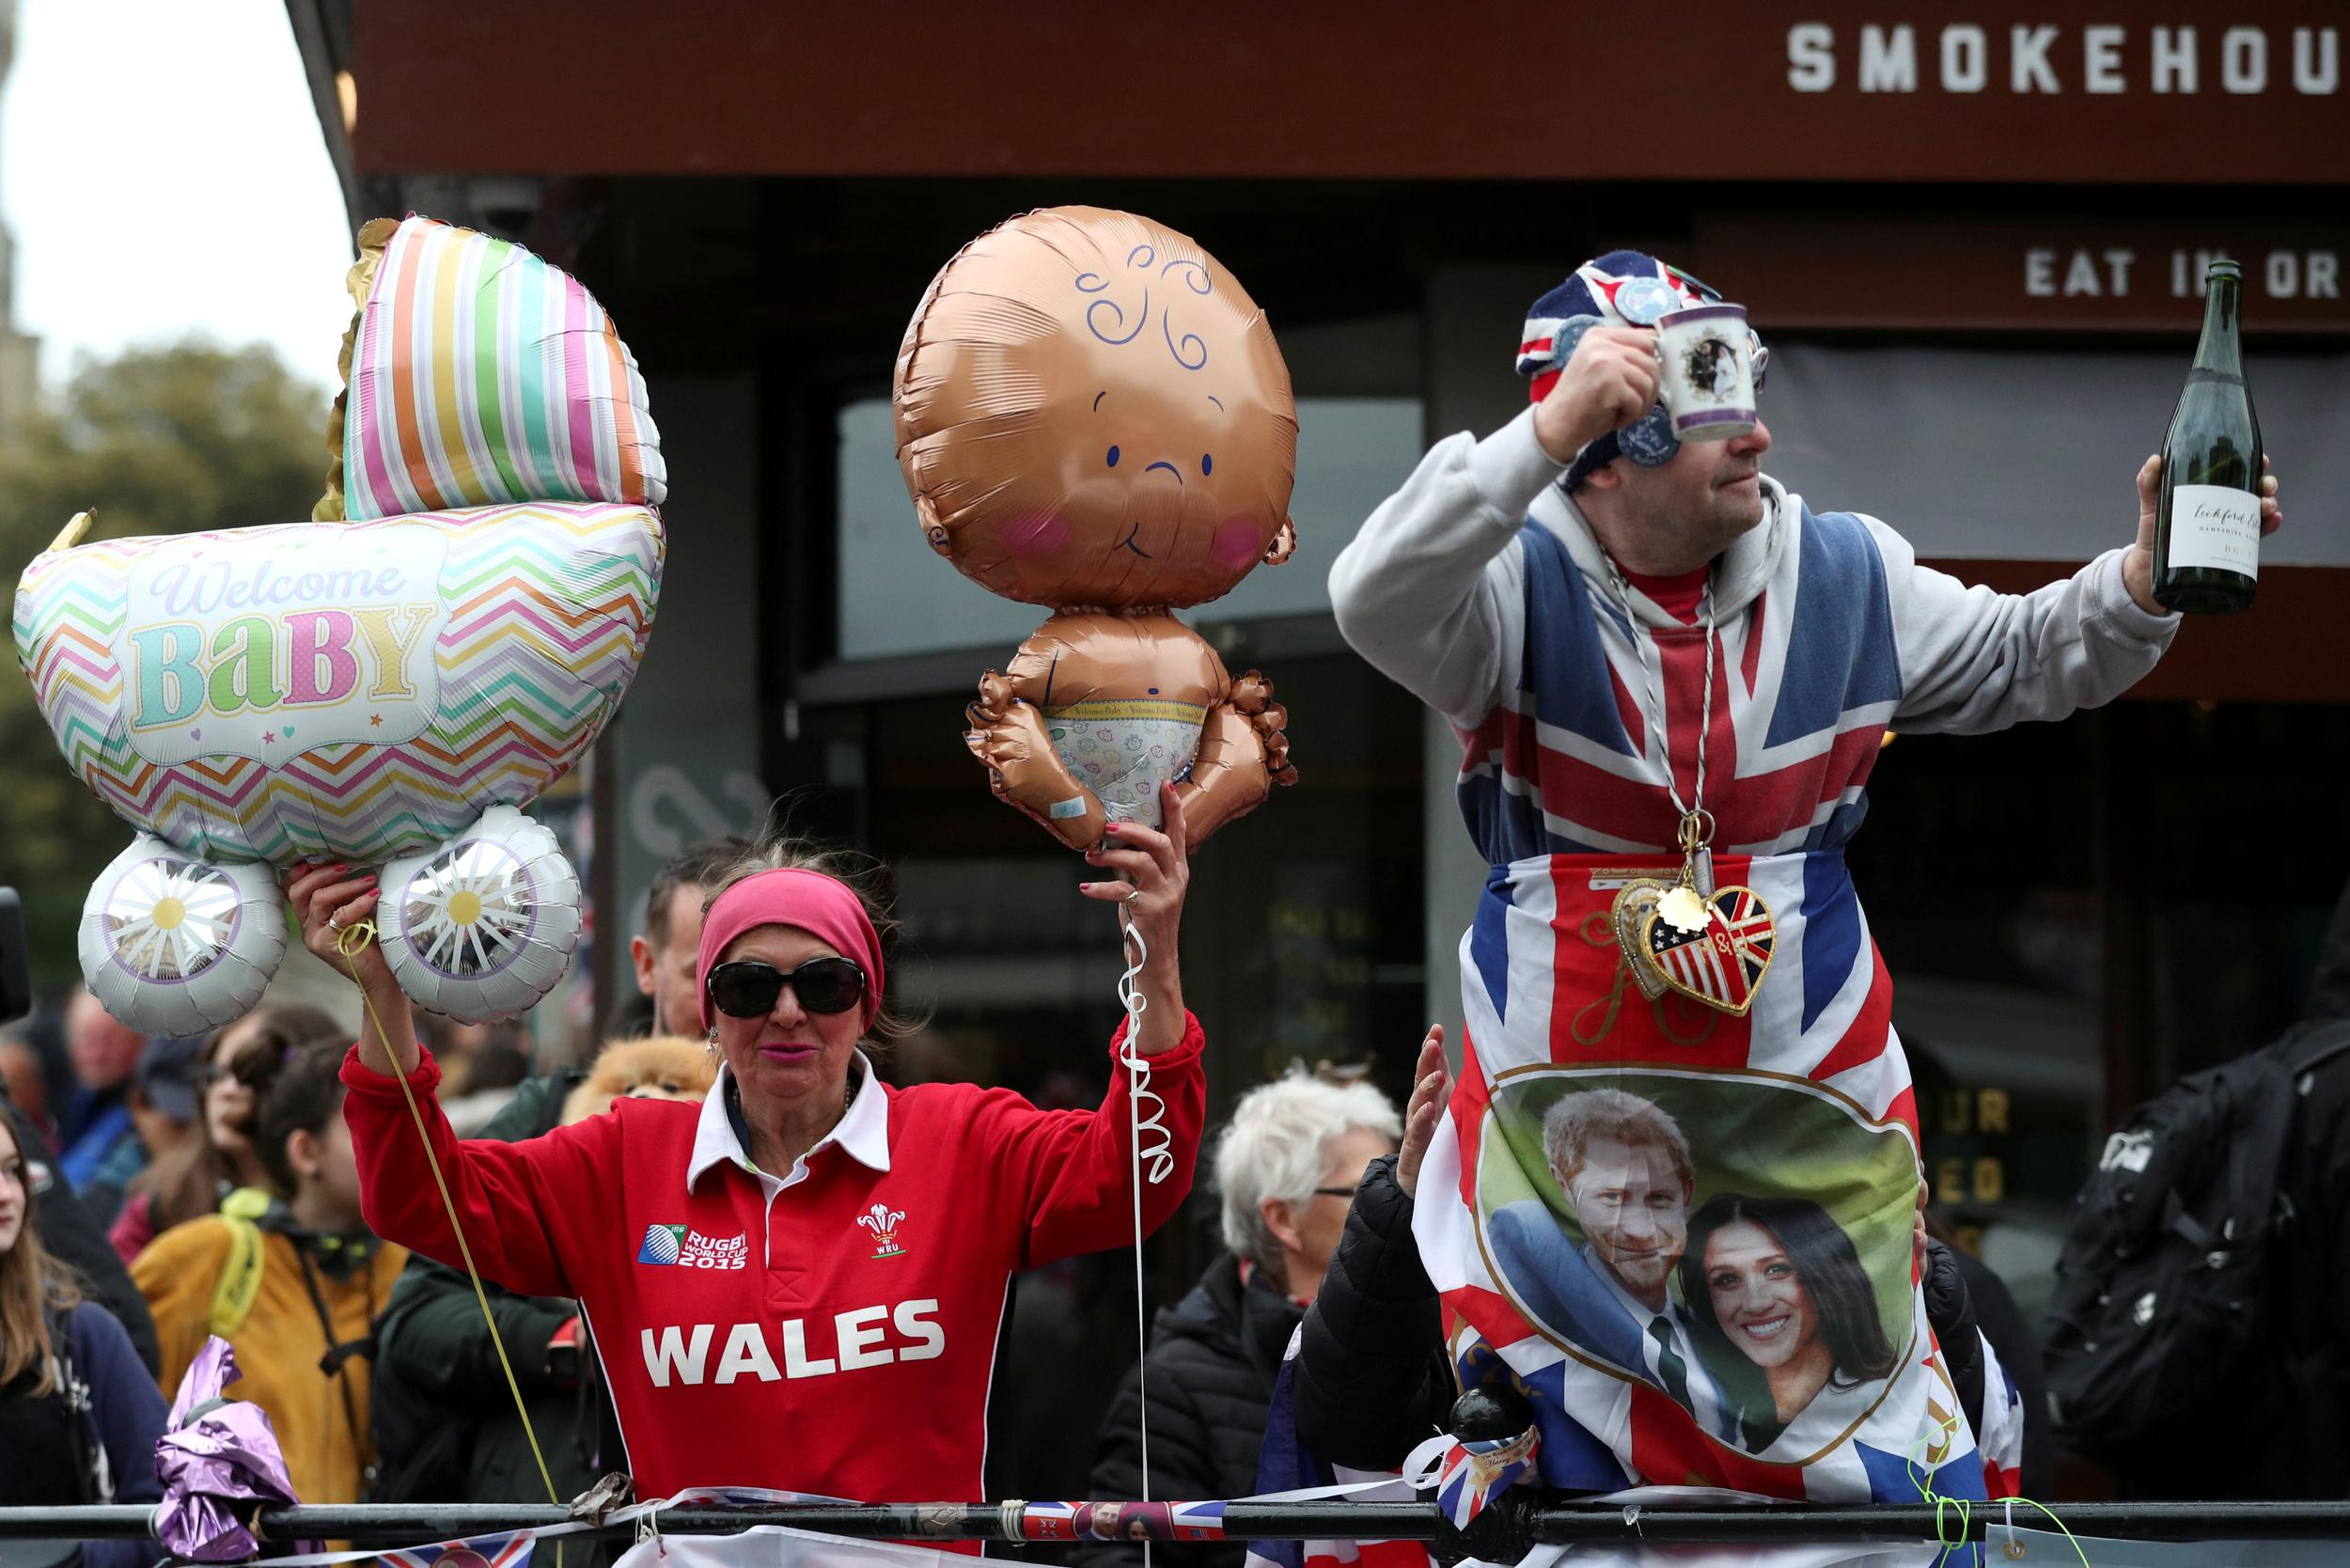 People celebrate outside Windsor Castle after Britain's Meghan, the Duchess of Sussex gave birth to a boy, in Windsor, Britain May 6, 2019. REUTERS/Hannah McKay